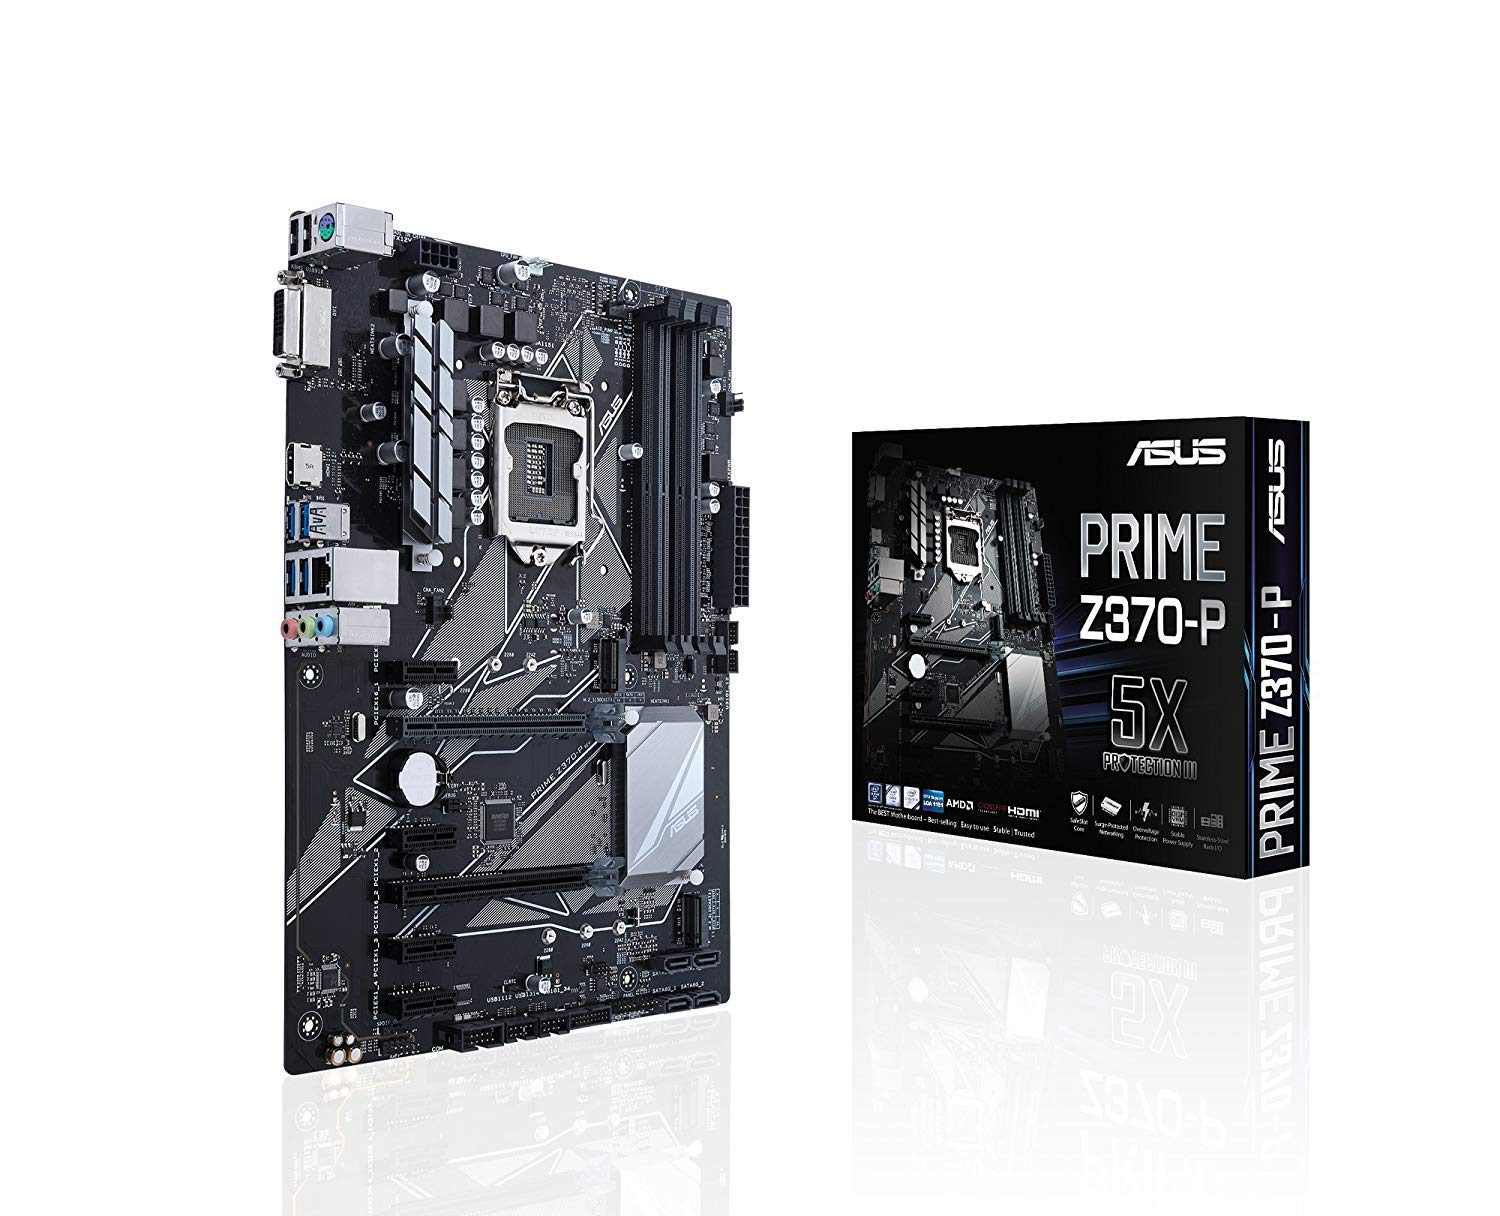 Asus Prime Z370 P Lga1151 Ddr4 Hdmi Dvi M2 Atx Diagram Of Computer Components Mouse Monitor Cpu Etc Motherboard With Usb 31 For 8th Generation Intel Core Processors Computers Accessories